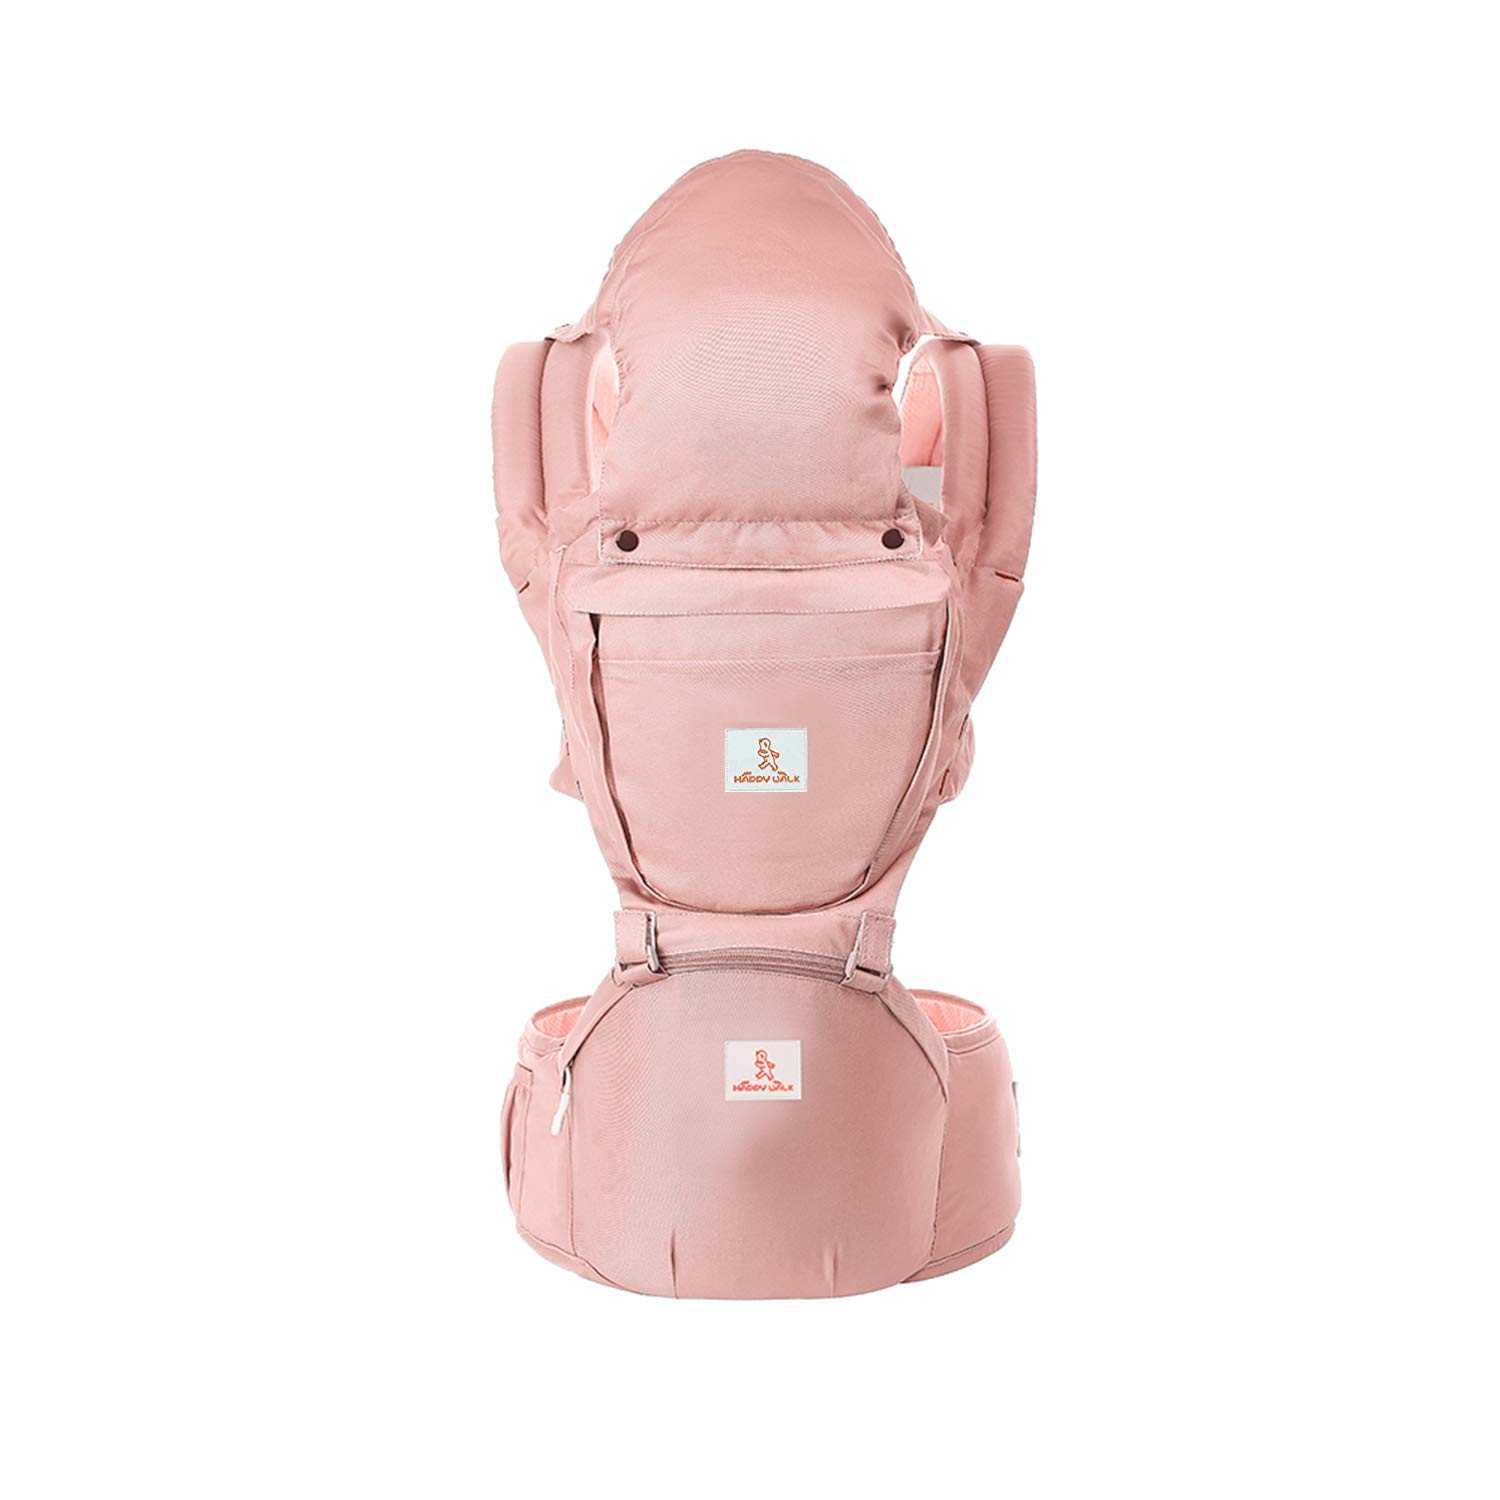 Baby Carrier with Hip Seat 360 Ergonomic 6-in-1 Convertible Hipseat Baby Waist Stool Carrier for All Seasons, Toddler Tush Stool, Baby Wrap Carrier Front and Back (Pink)